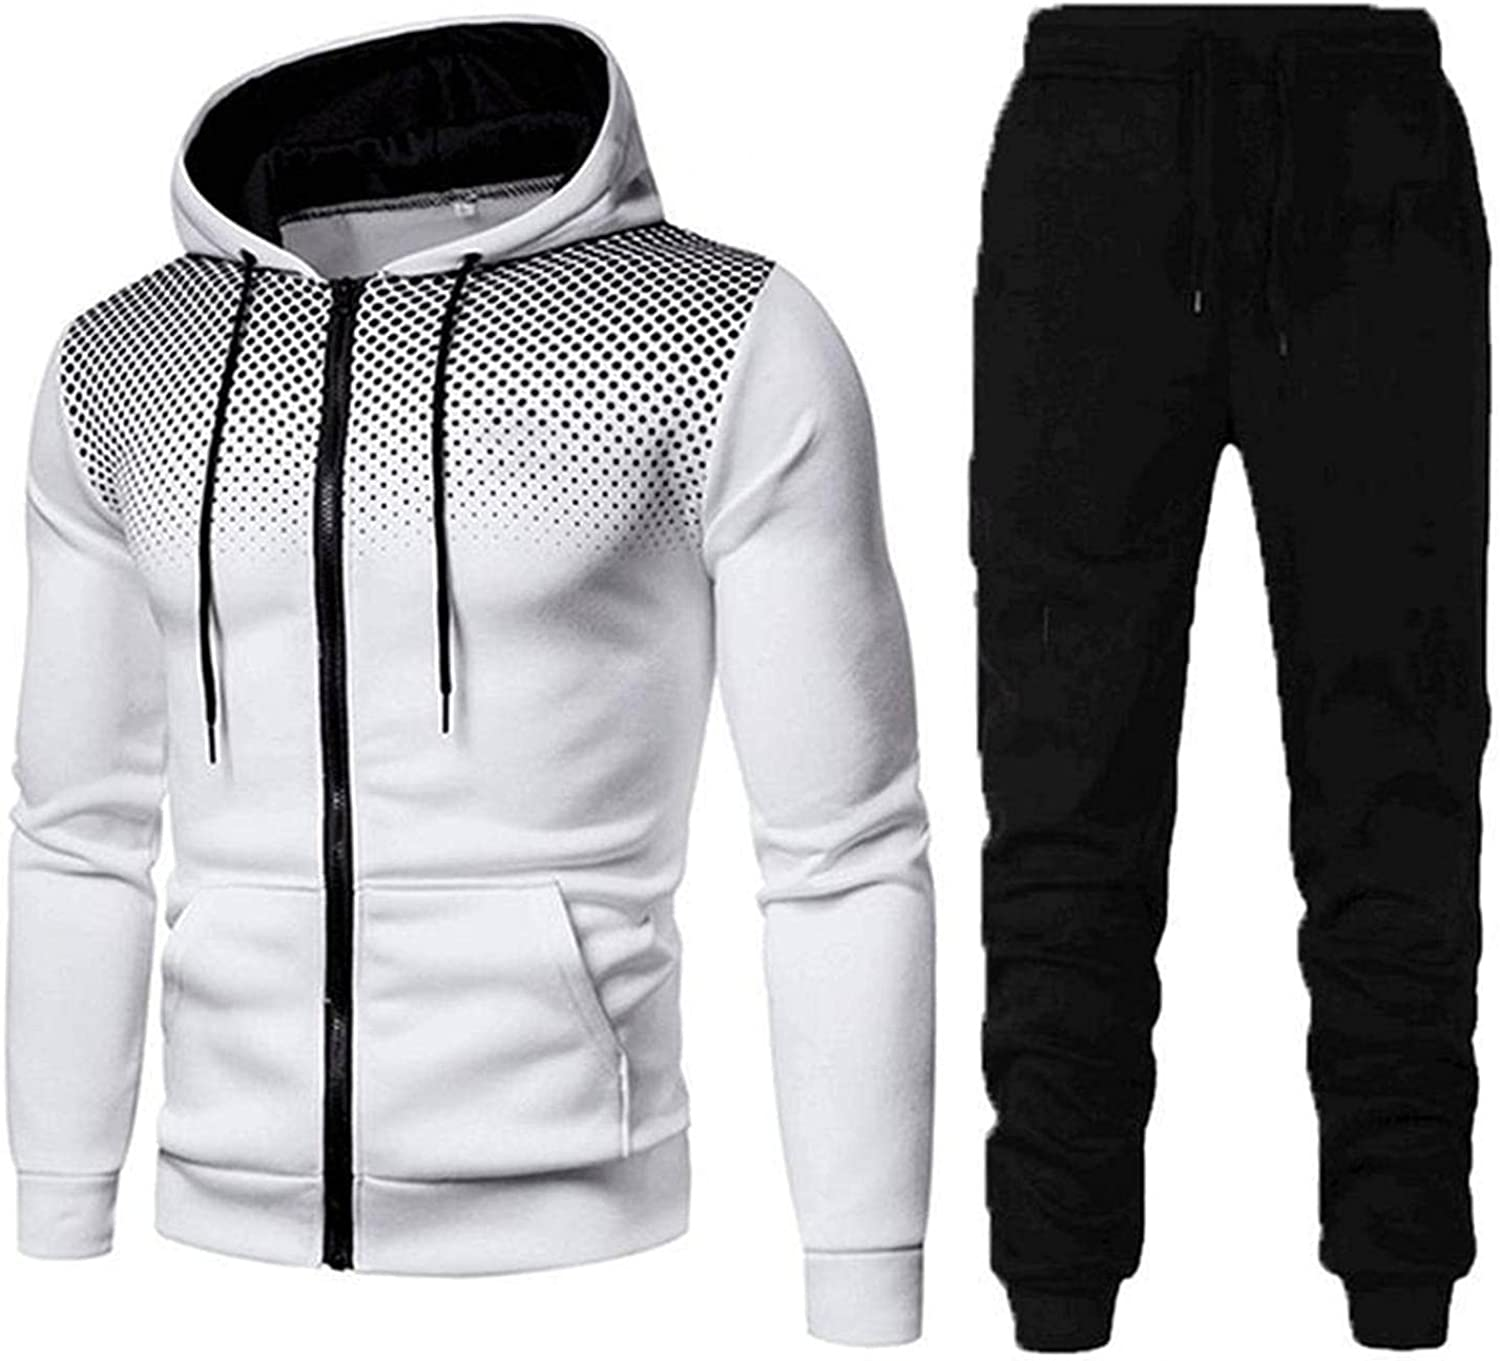 Mens Hooded 2 Piece Tracksuits Long Sleeve Drawstring Hoodie Tops Pants Set Big & Tall Athletic Sports Outfits